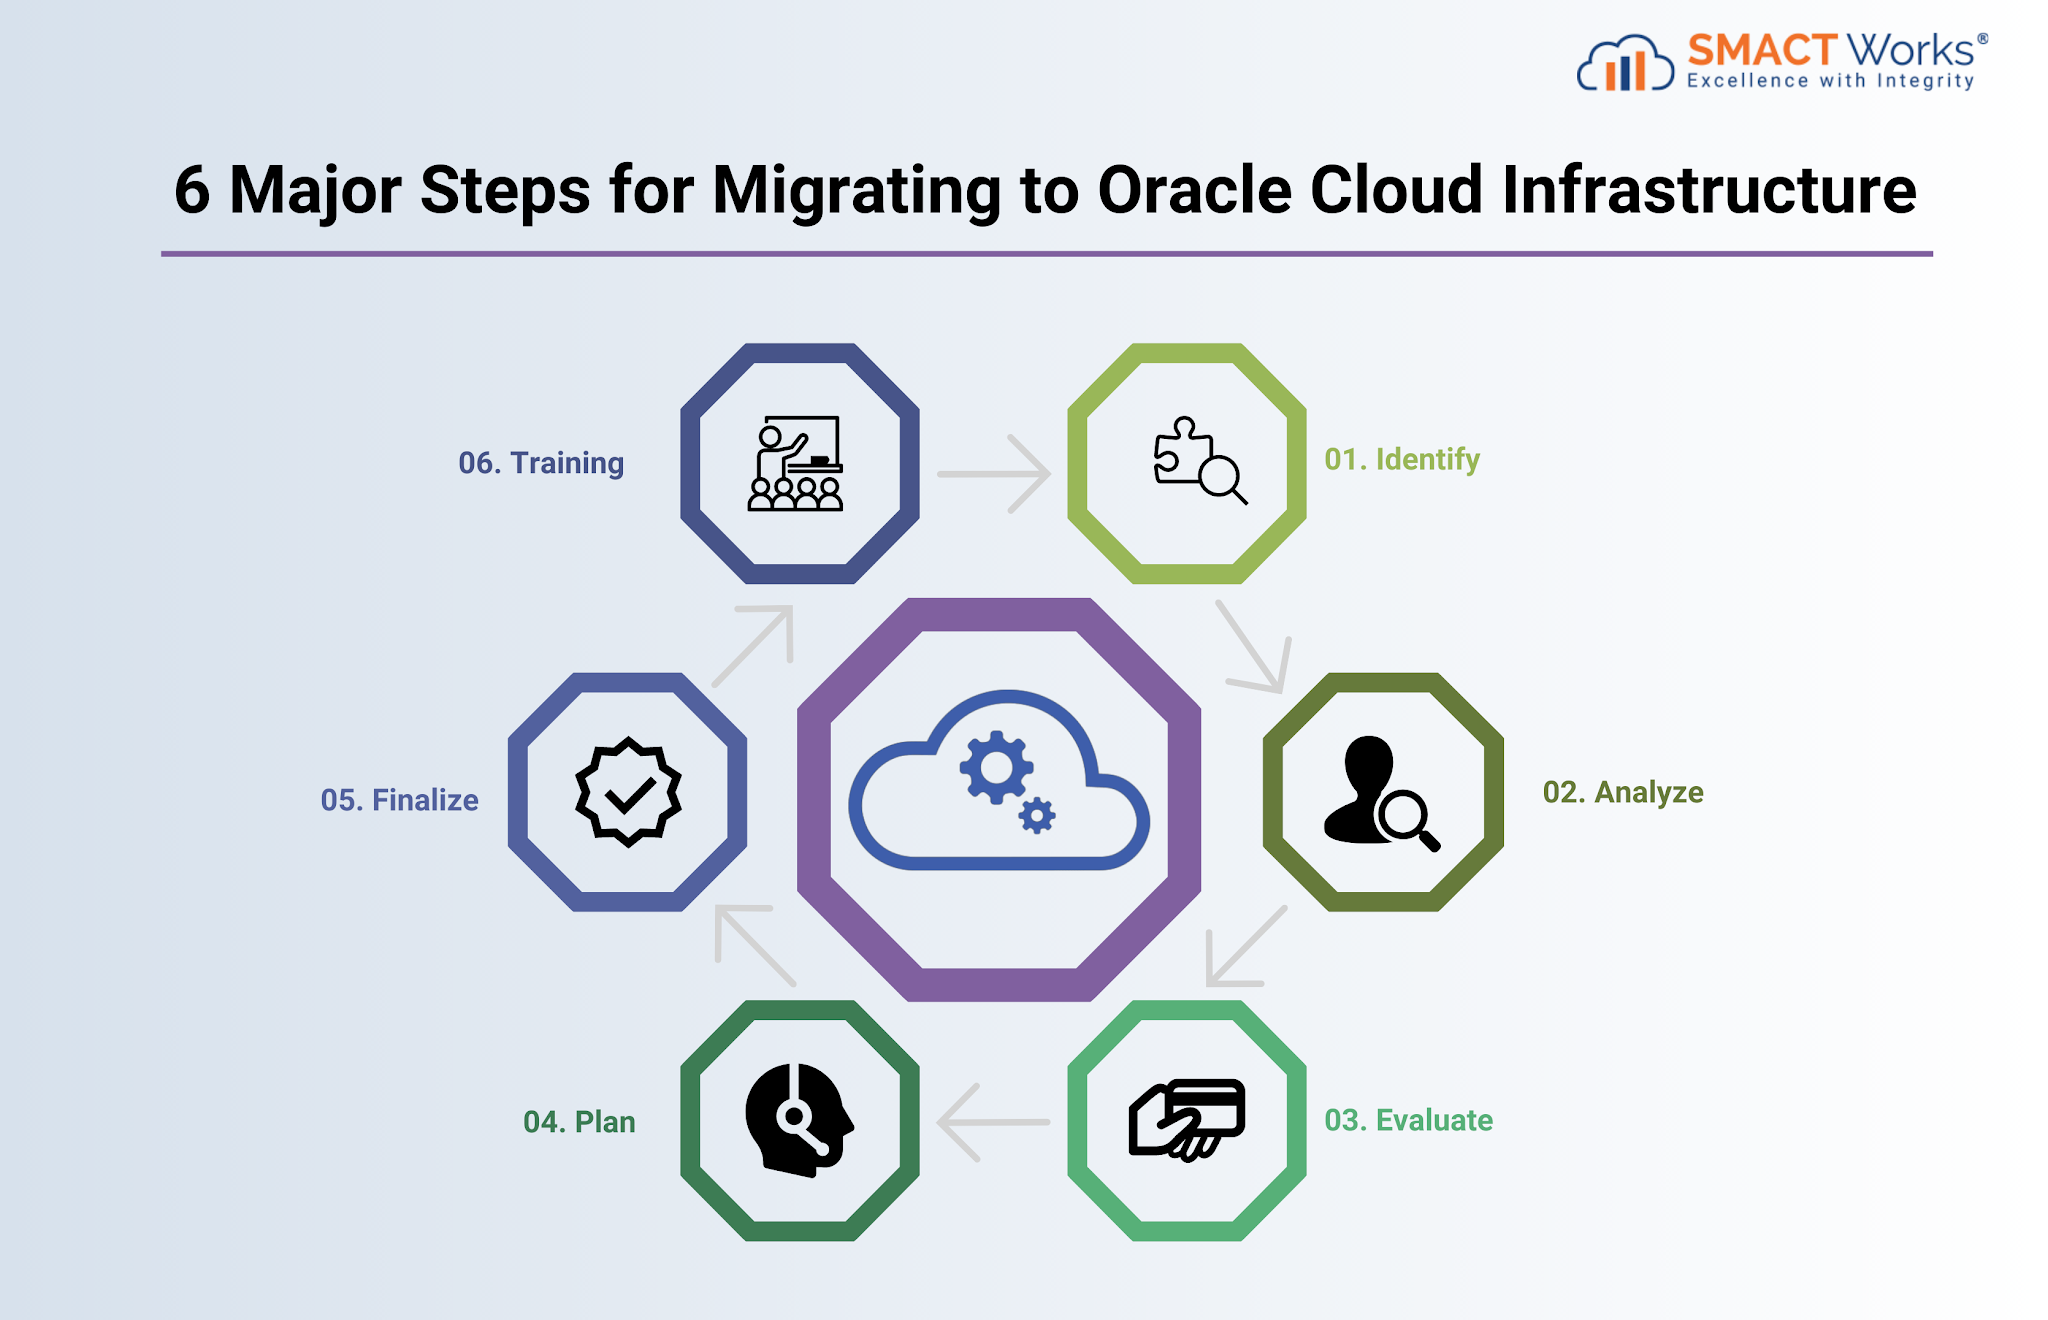 6 Major Steps for Migrating to Oracle Cloud Infrastructure